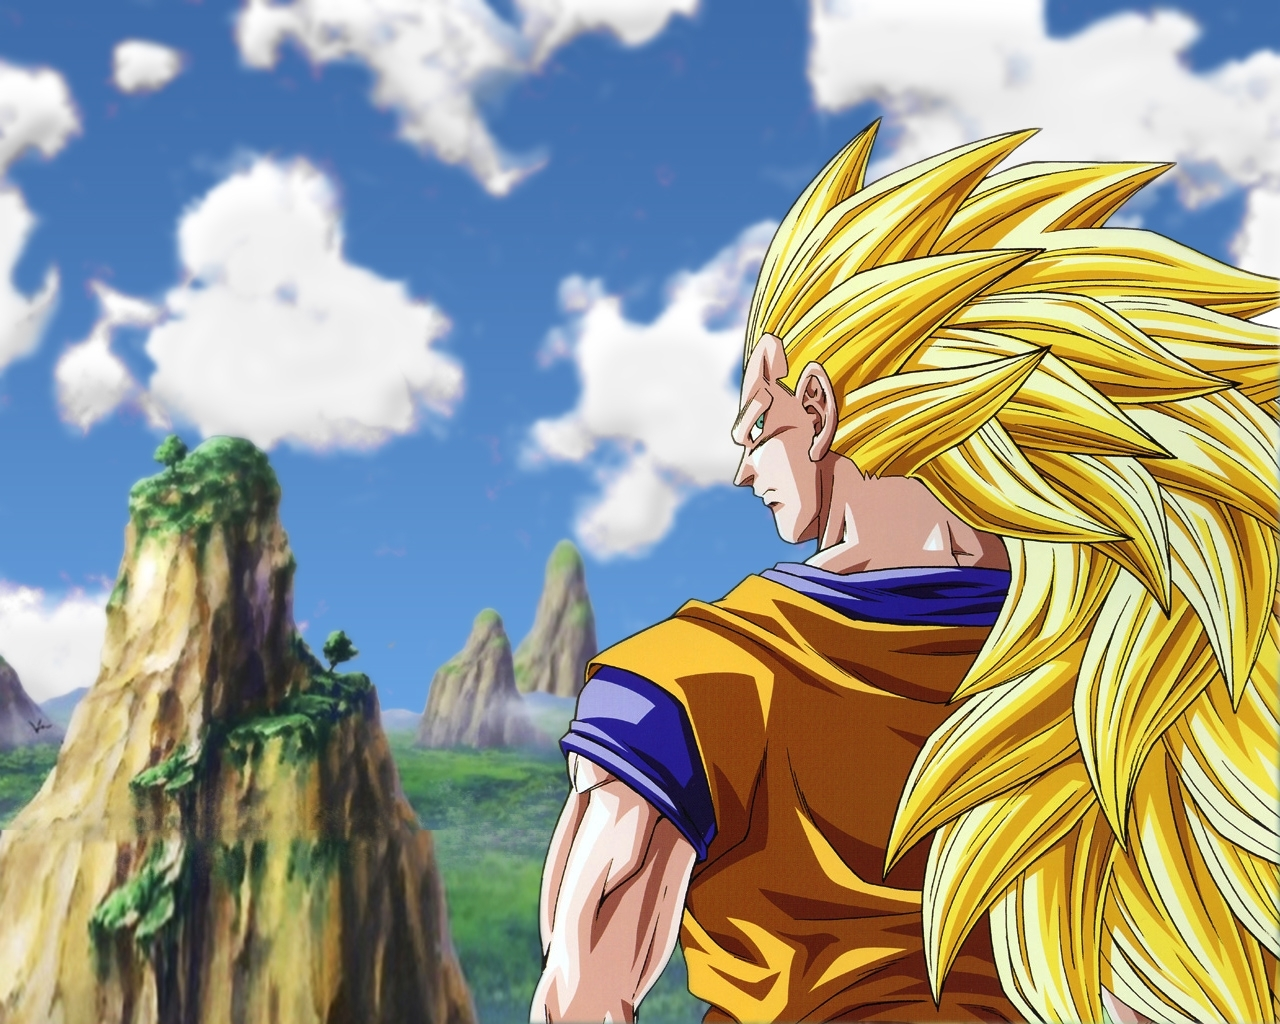 Dragonball Z Movie Characters Goku Super Saiyan 3 Wallpaper 1